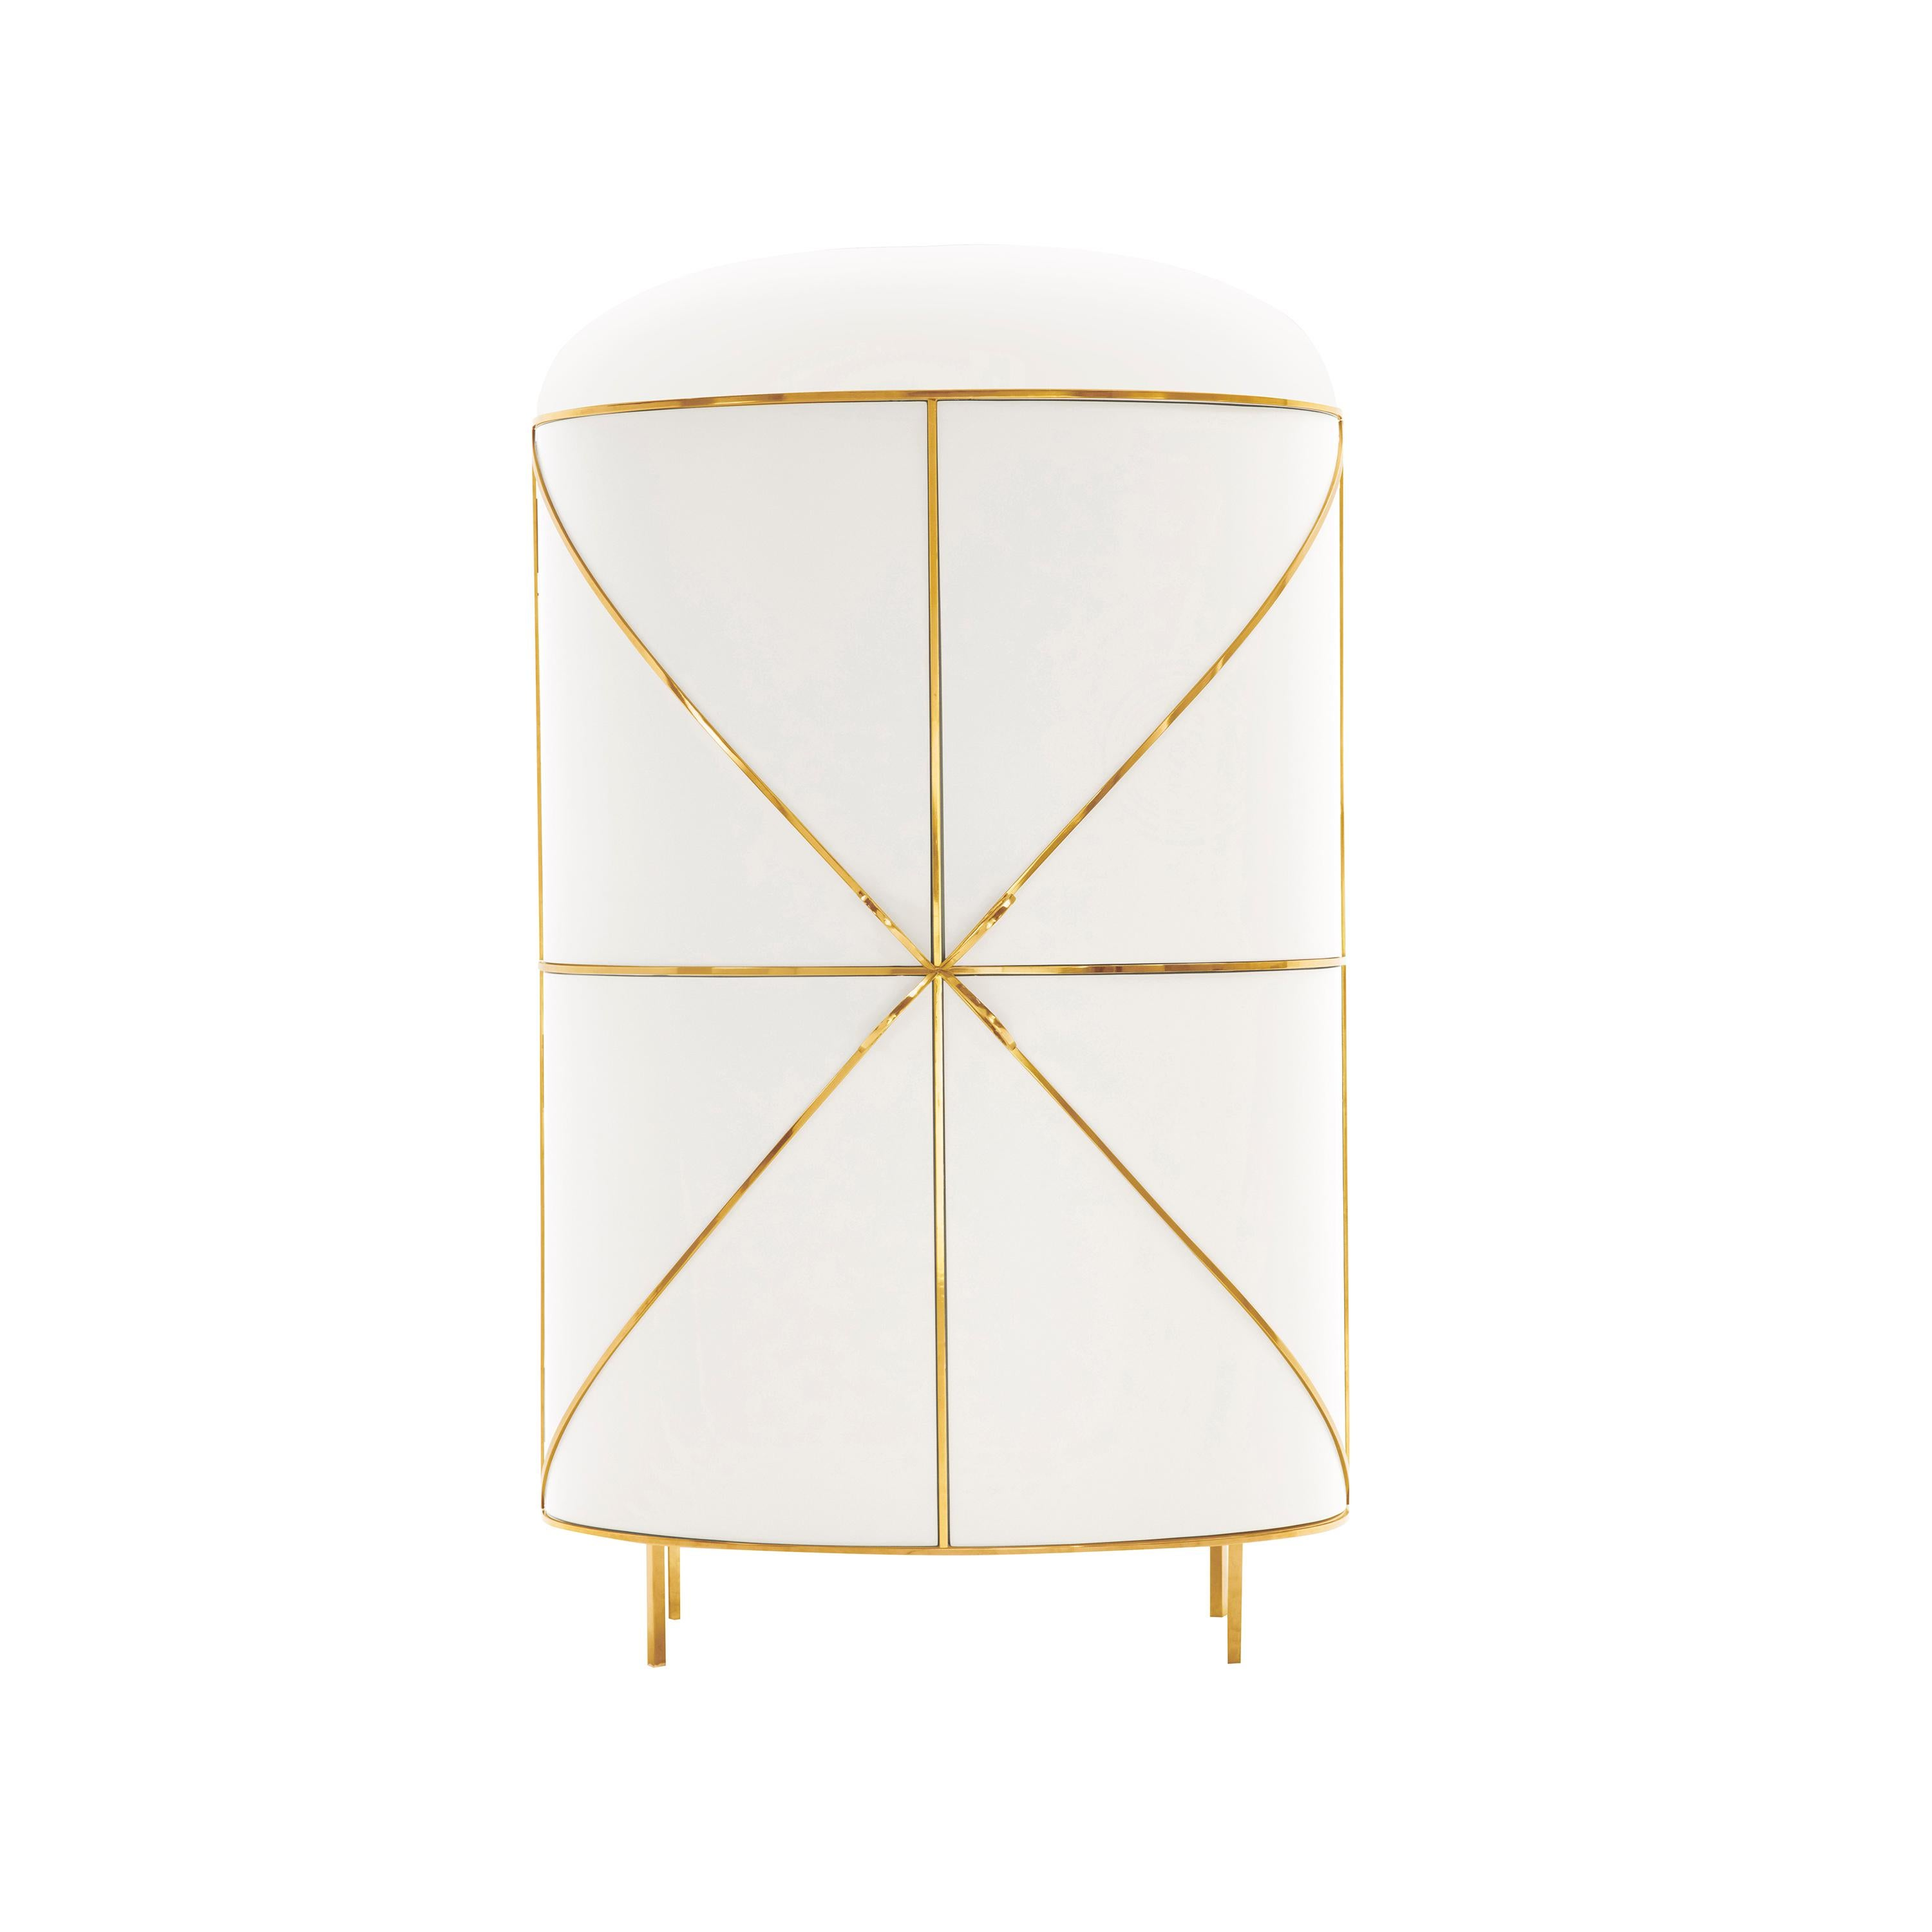 88 Secrets White Bar Cabinet with Gold Trims by Nika Zupanc